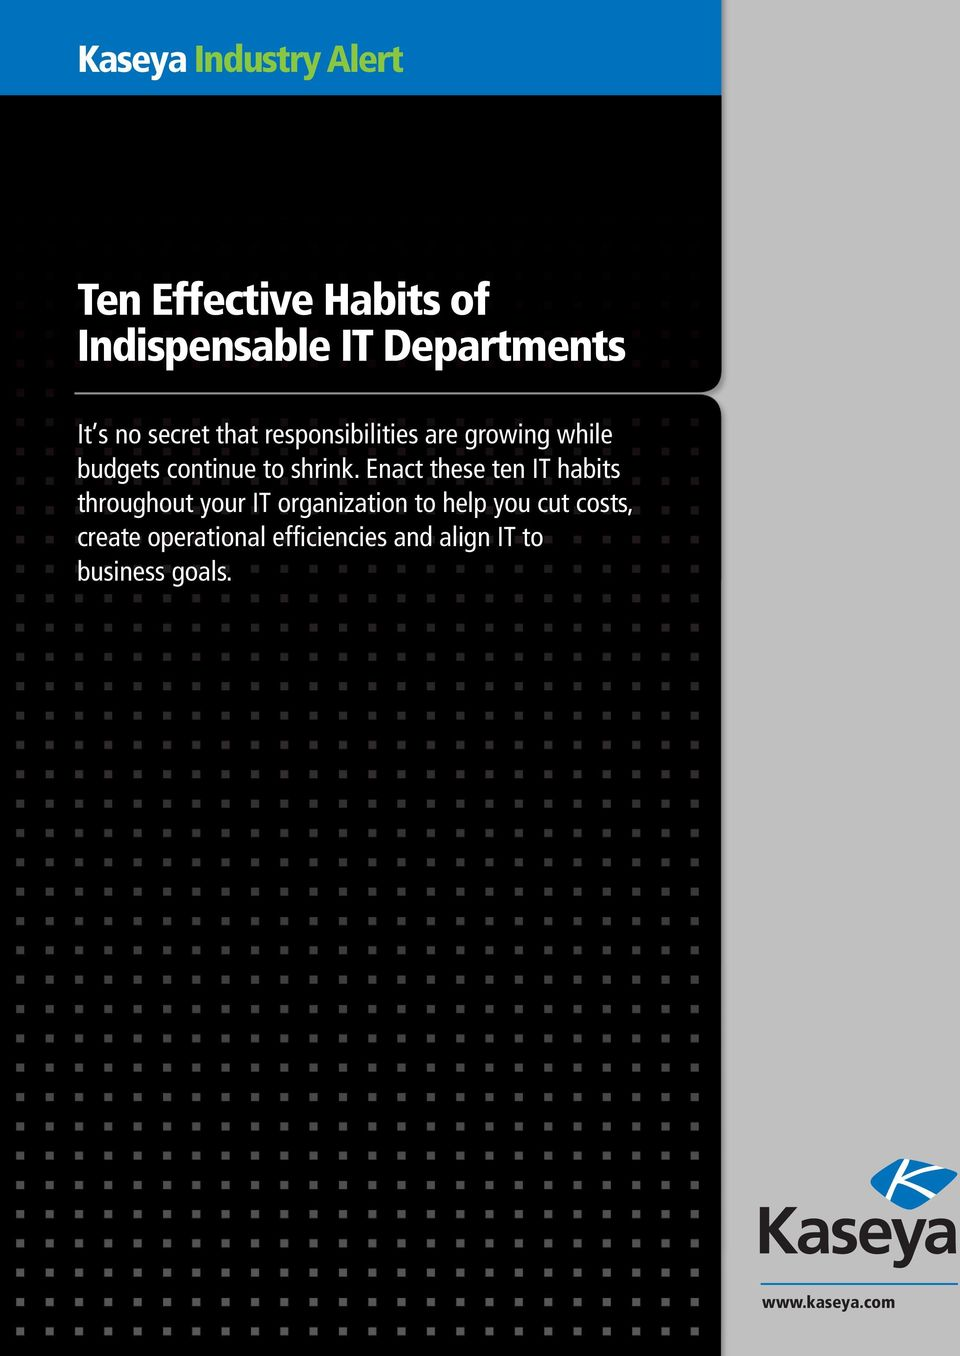 Enact these ten IT habits throughout your IT organization to help you cut